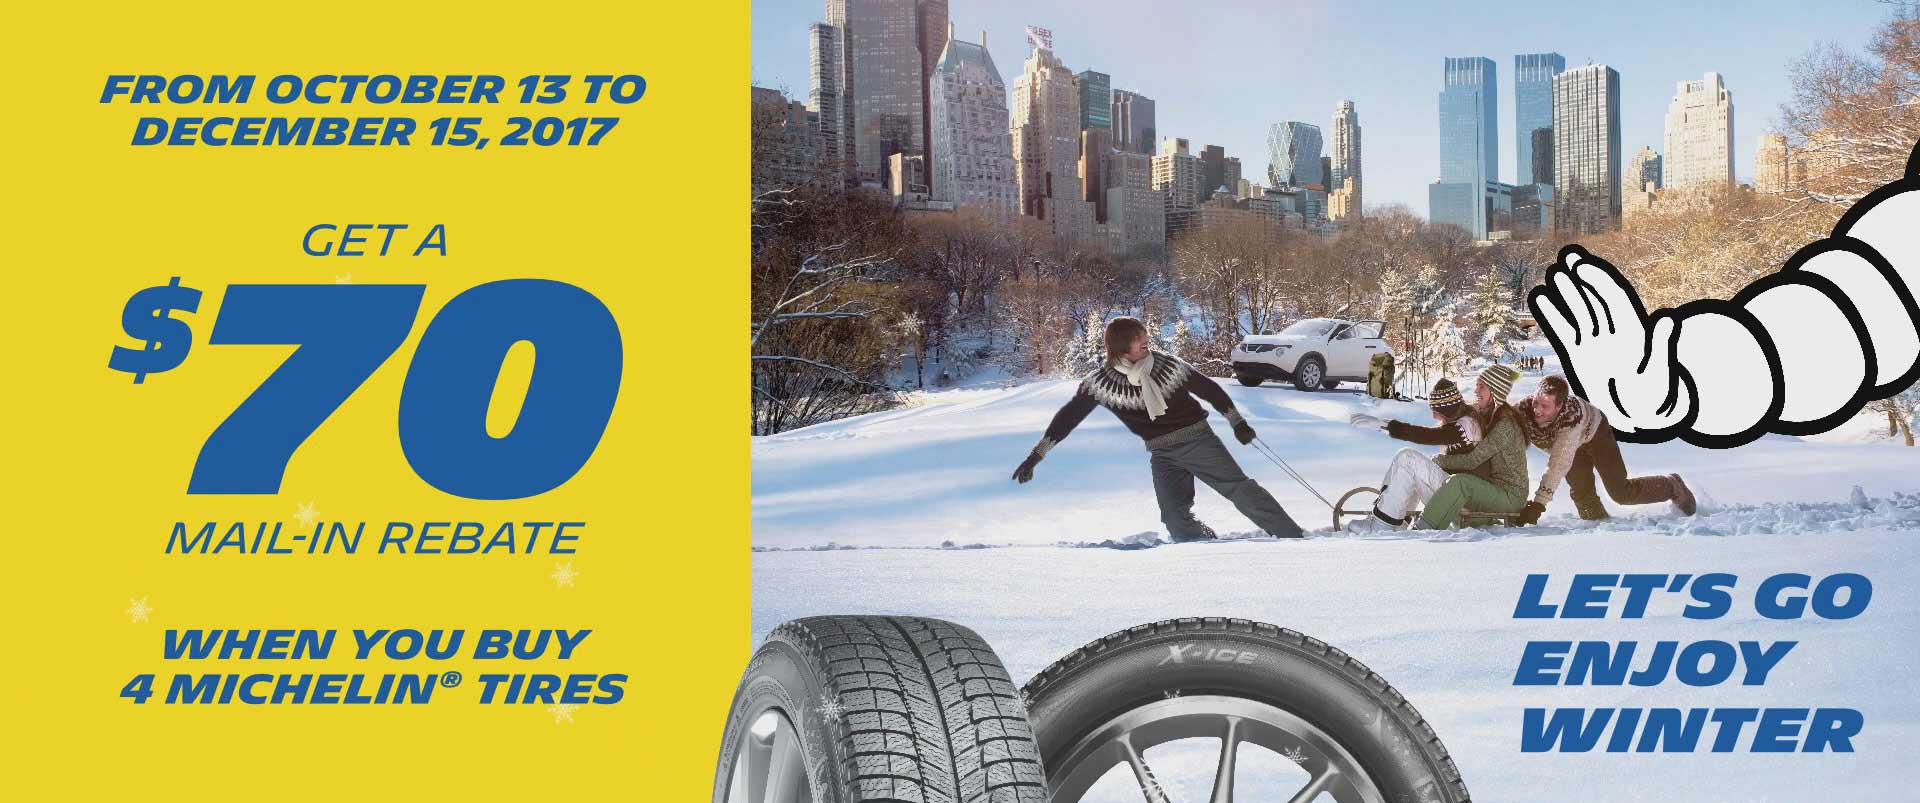 Lets go Enjoy Winter Michelin Tire Sale